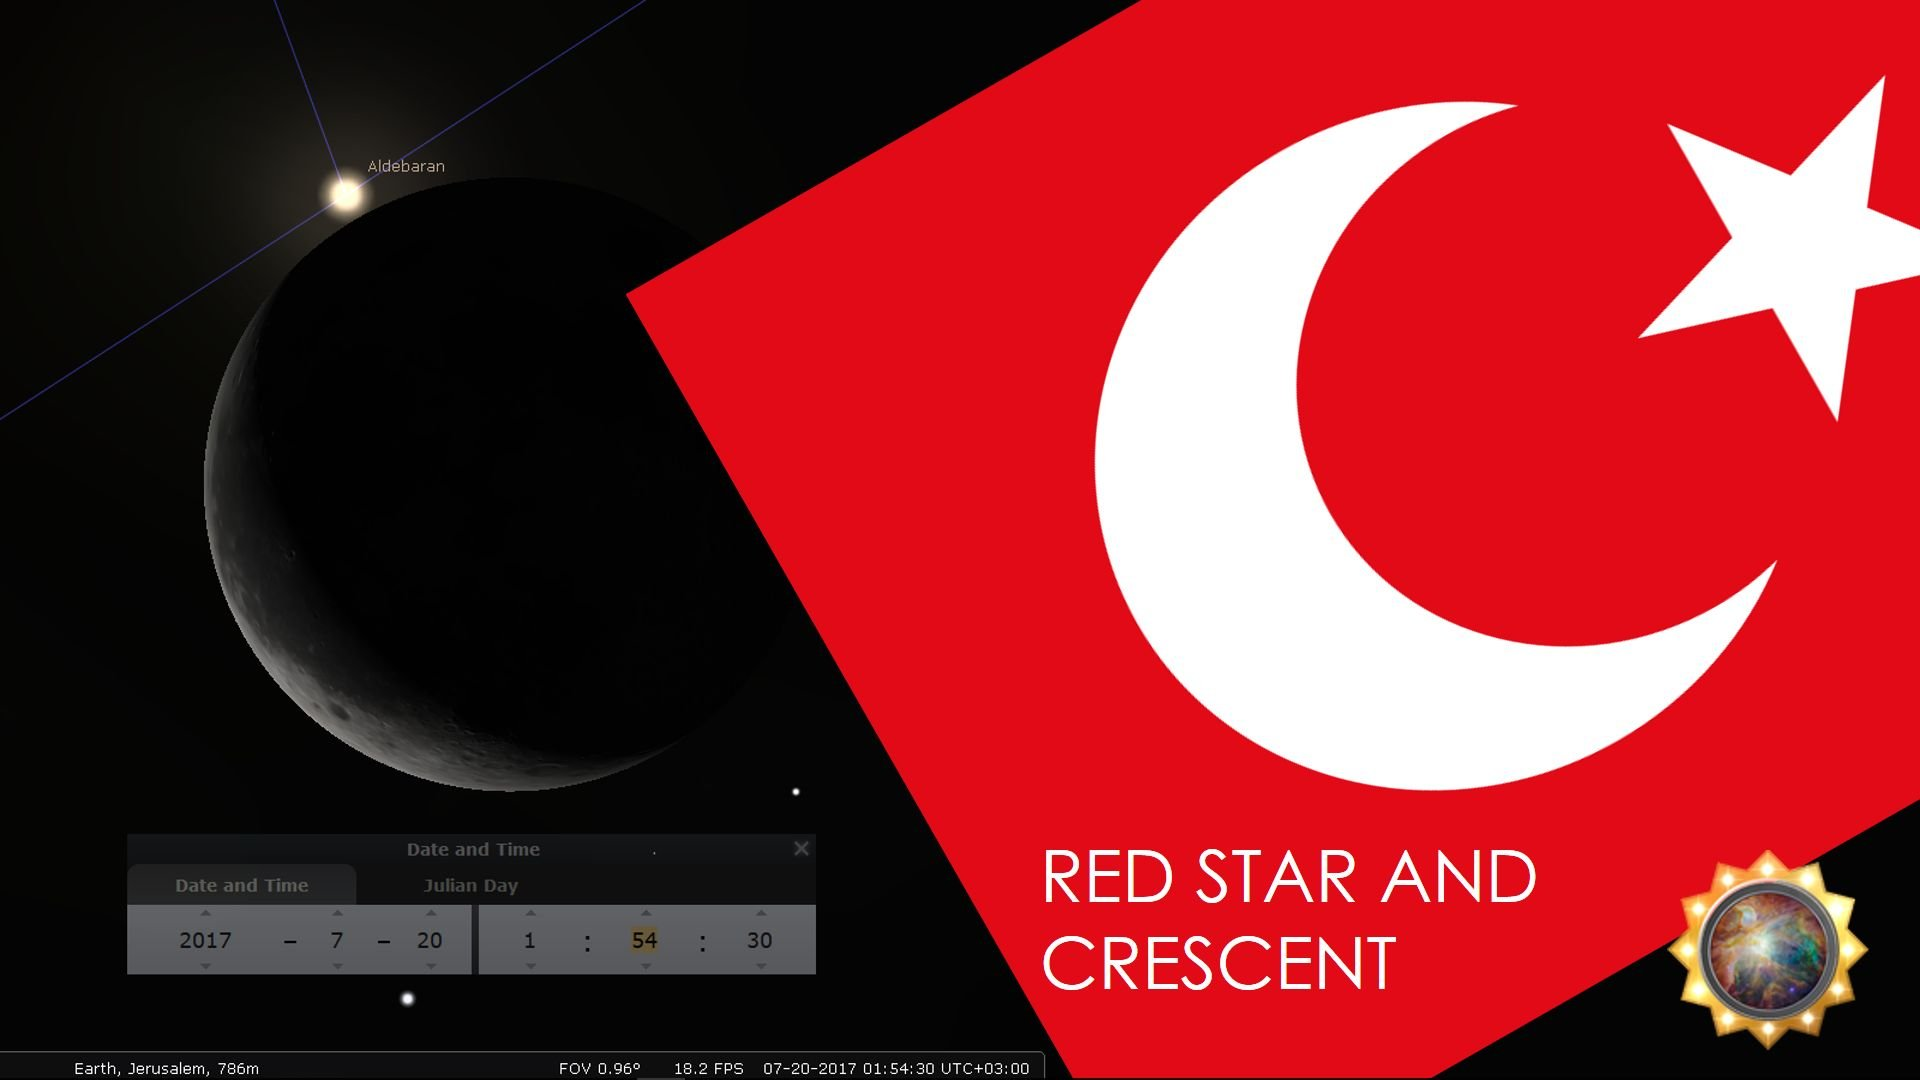 Red Star and Crescent